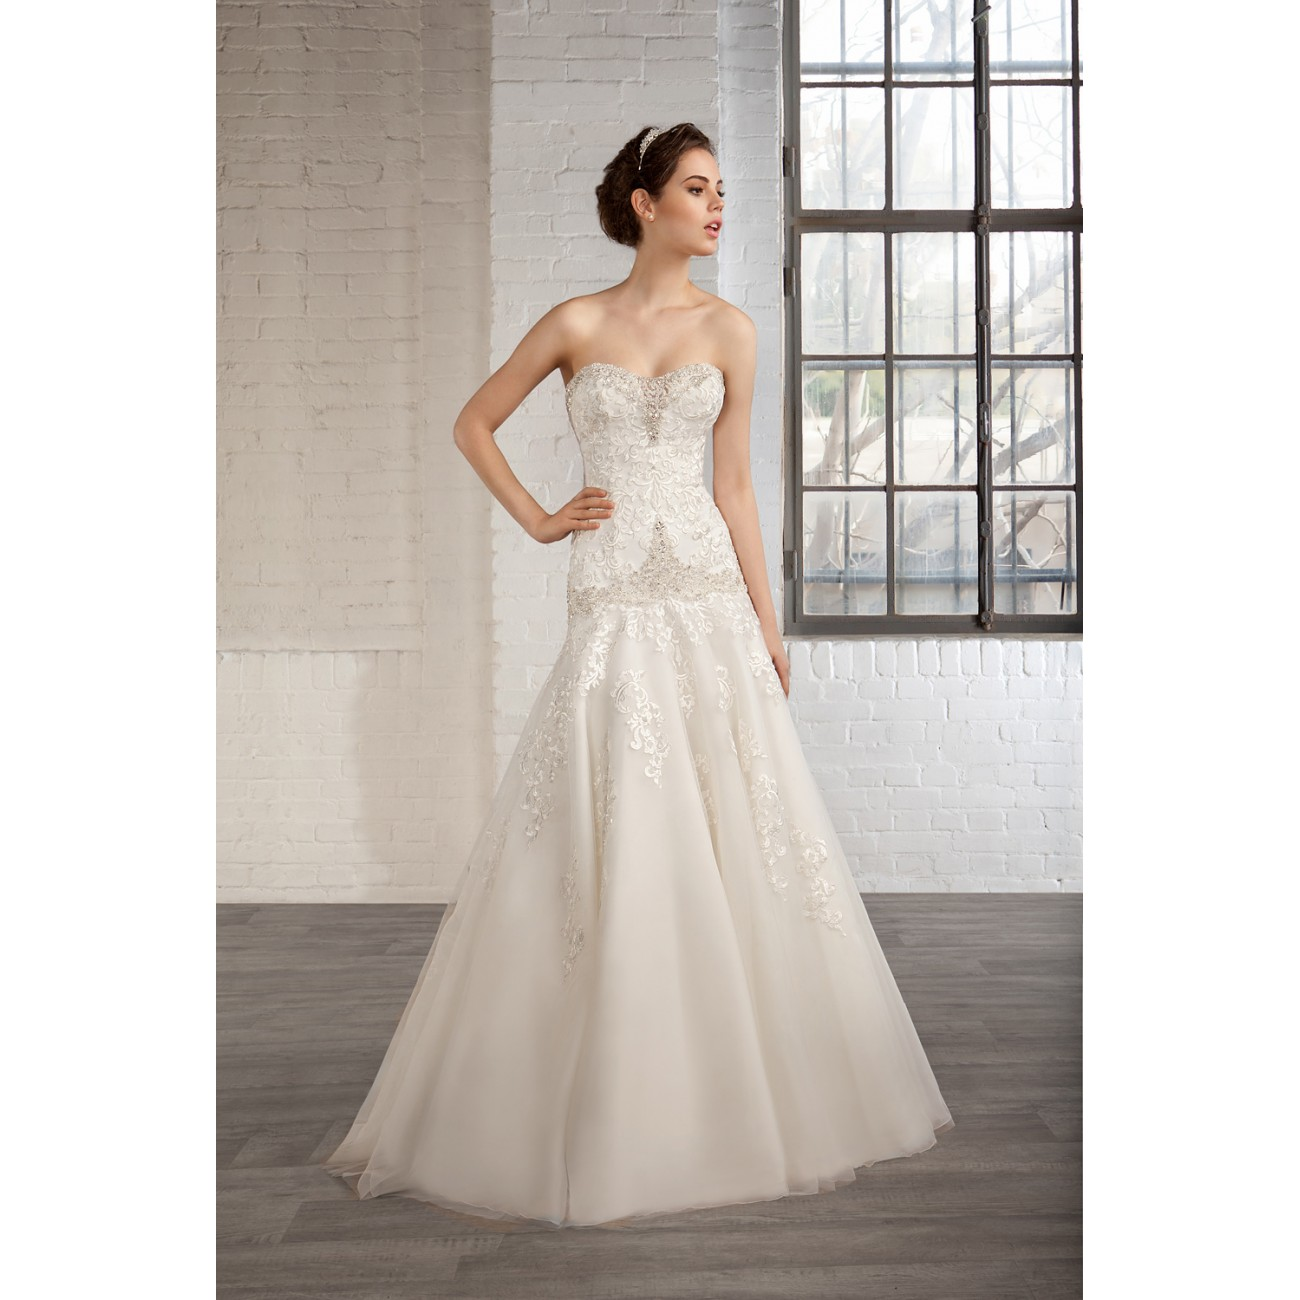 3be110292ba2 Cool italia dress  Abiti da sposa e cerimonia bollate